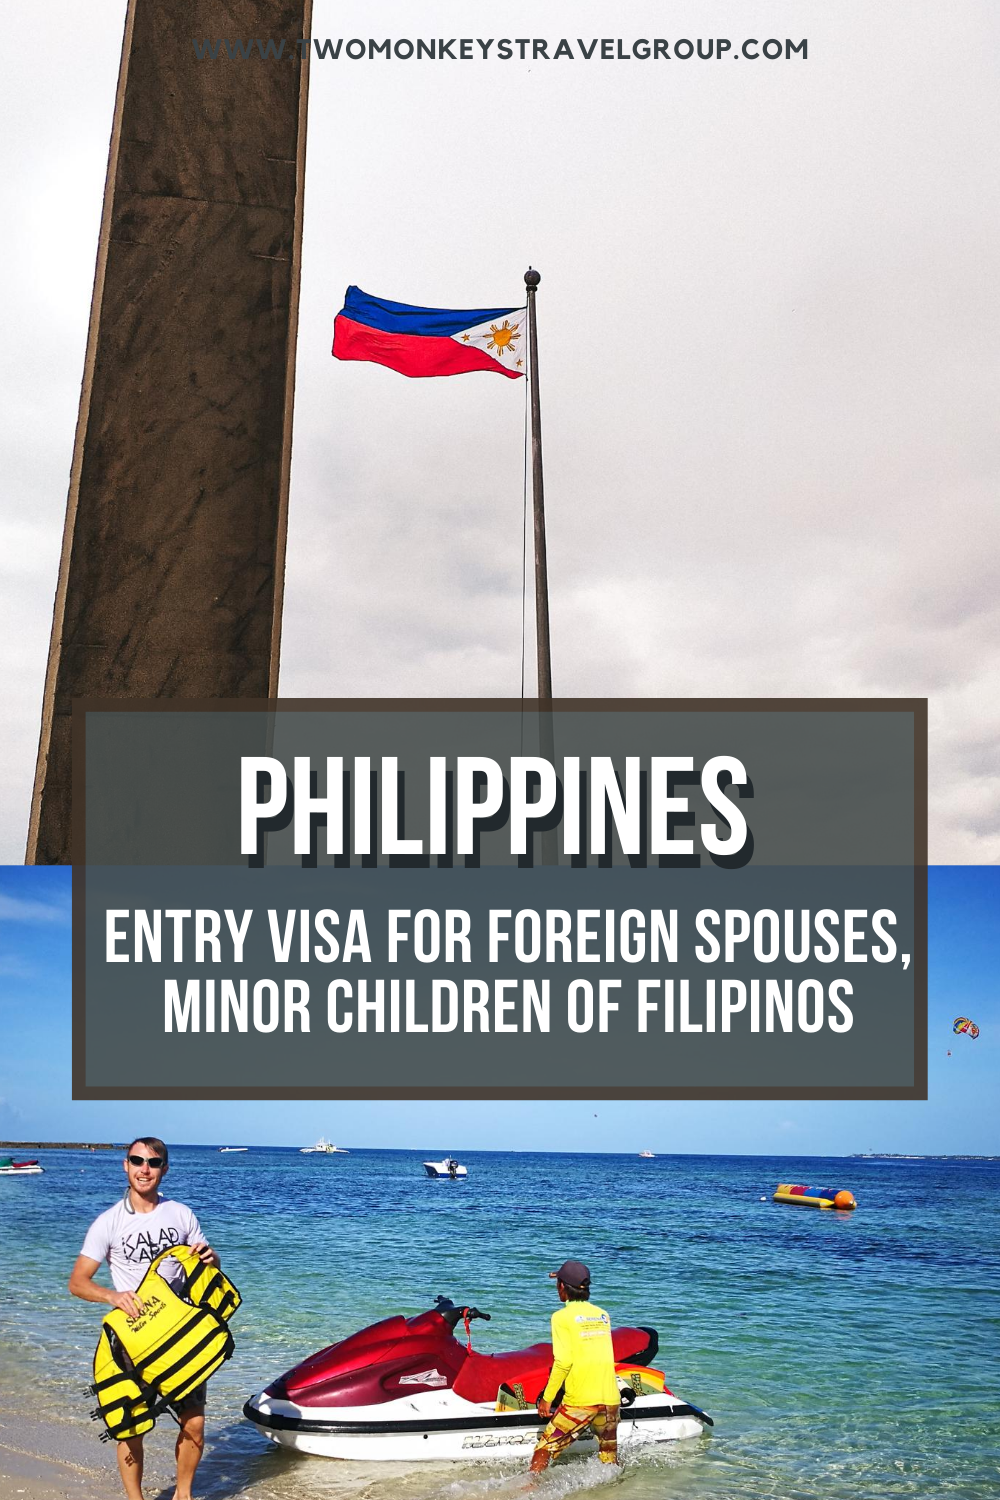 Philippines Entry Visa for Foreign Spouses, Minor Children of Filipinos